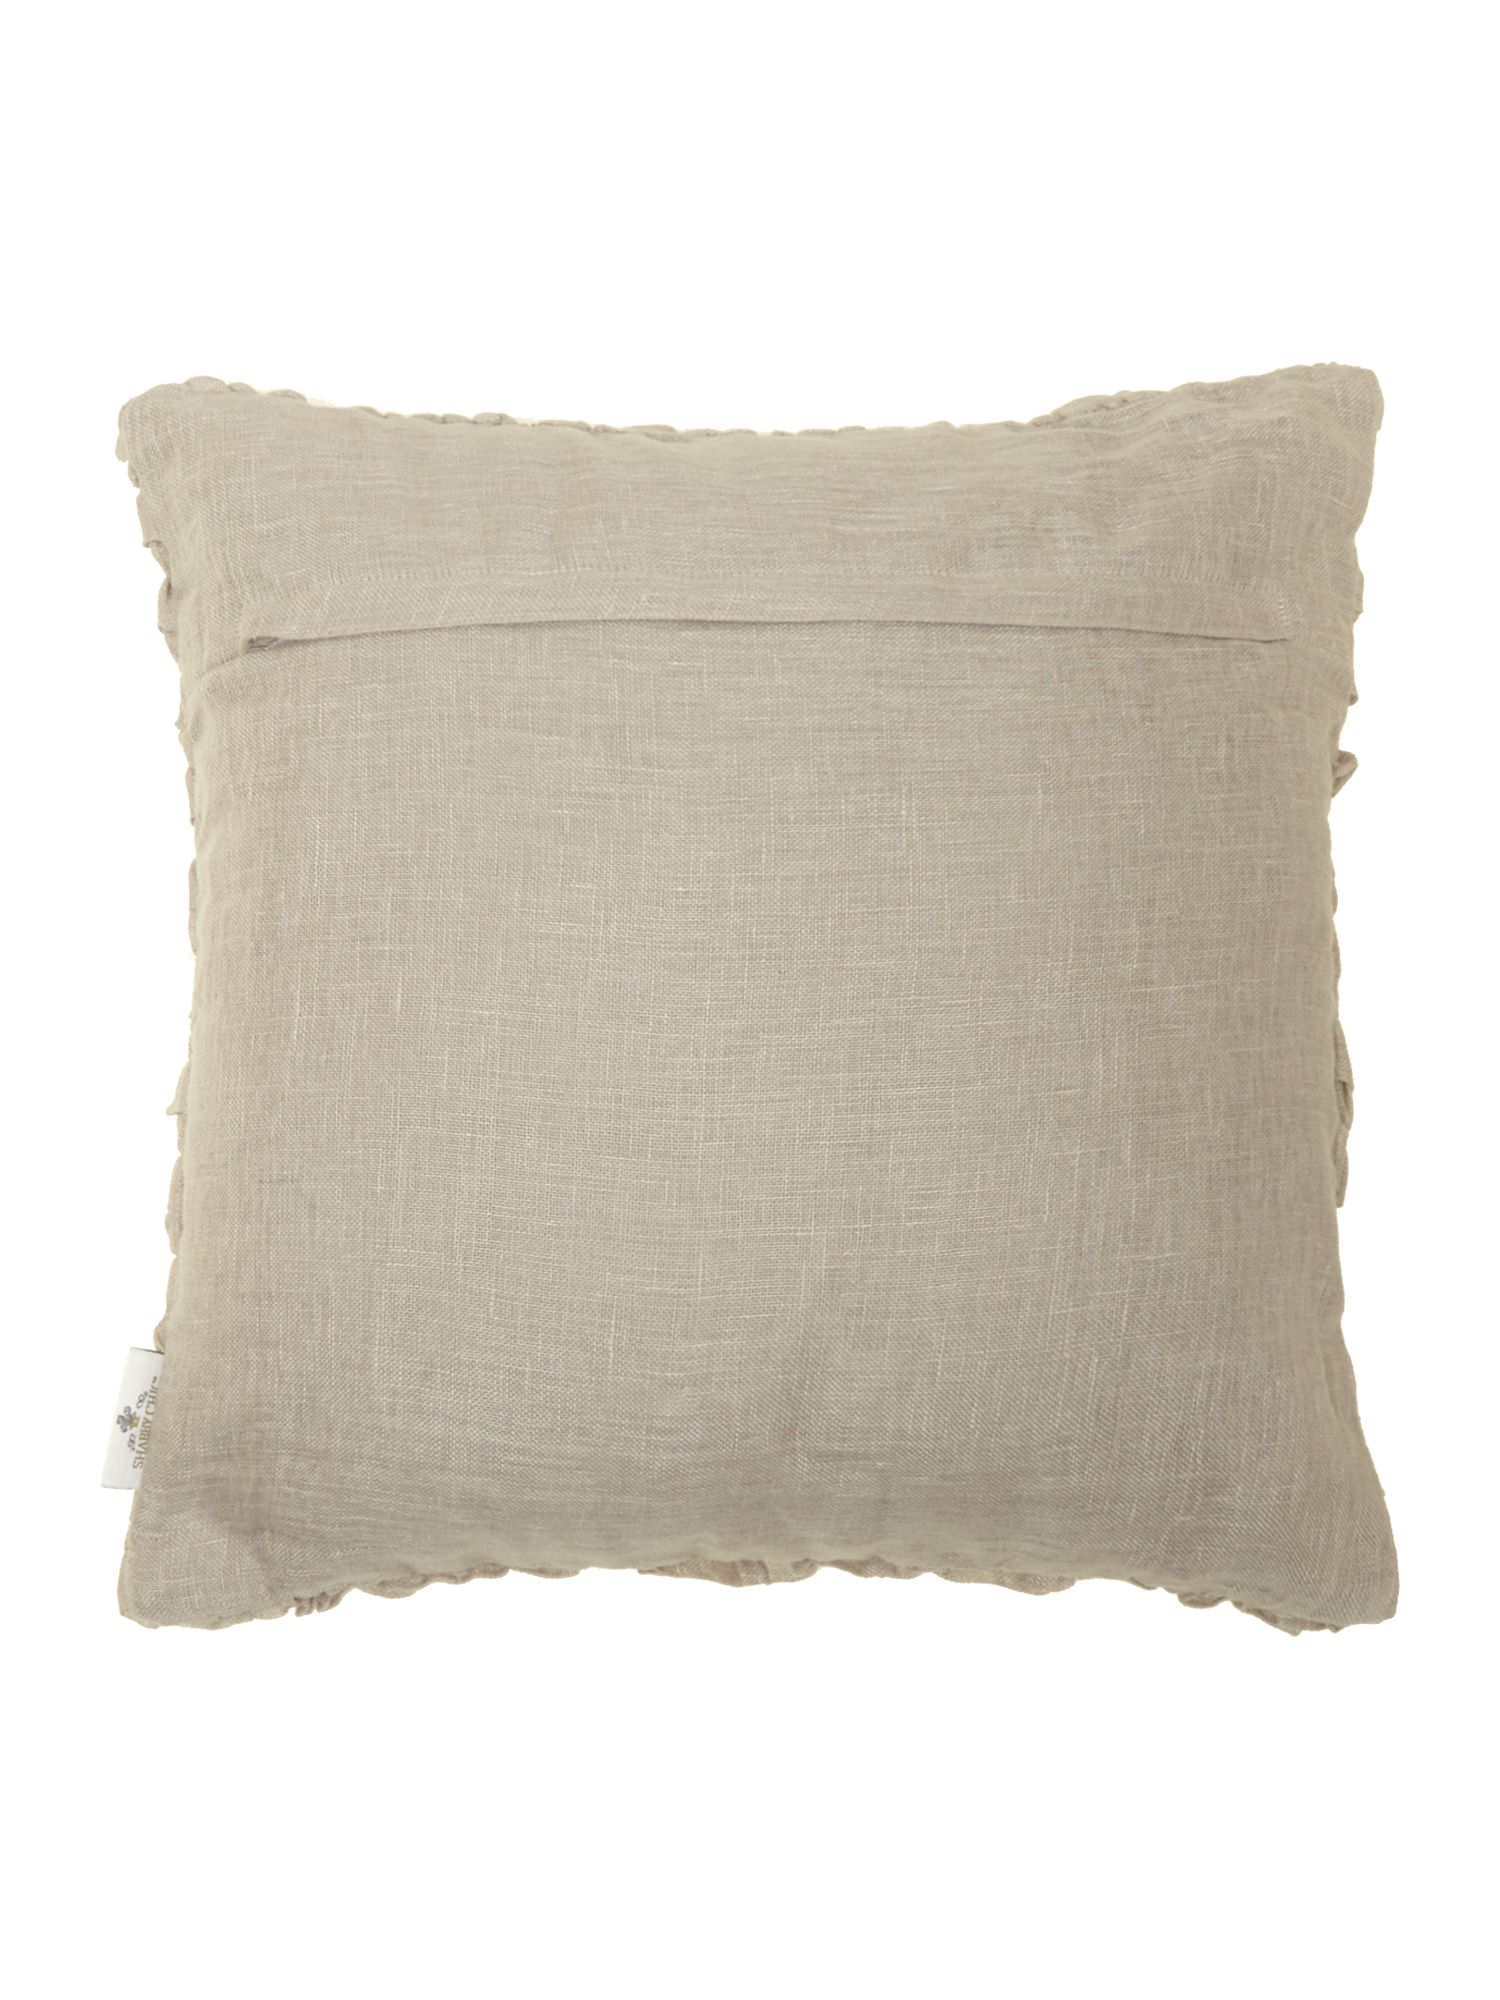 Grey linen ruffle cushion